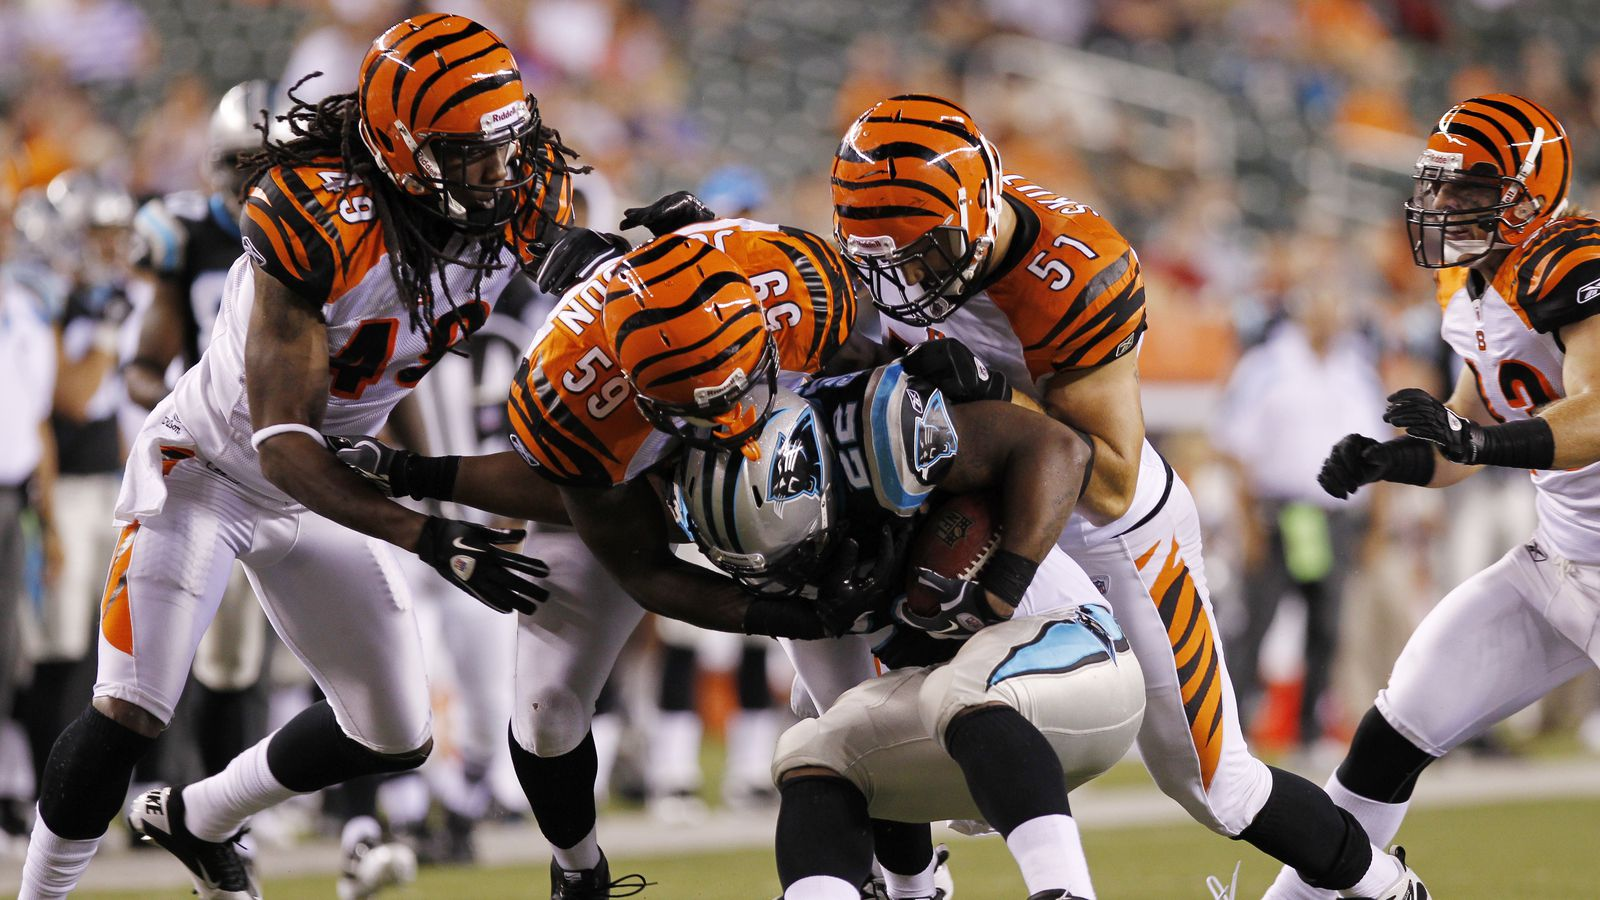 Cincinnati Bengals vs Carolina Panthers on Sep 26 2010 Watch video of the game buy tickets get stats amp depth charts game highlights analysis recap and